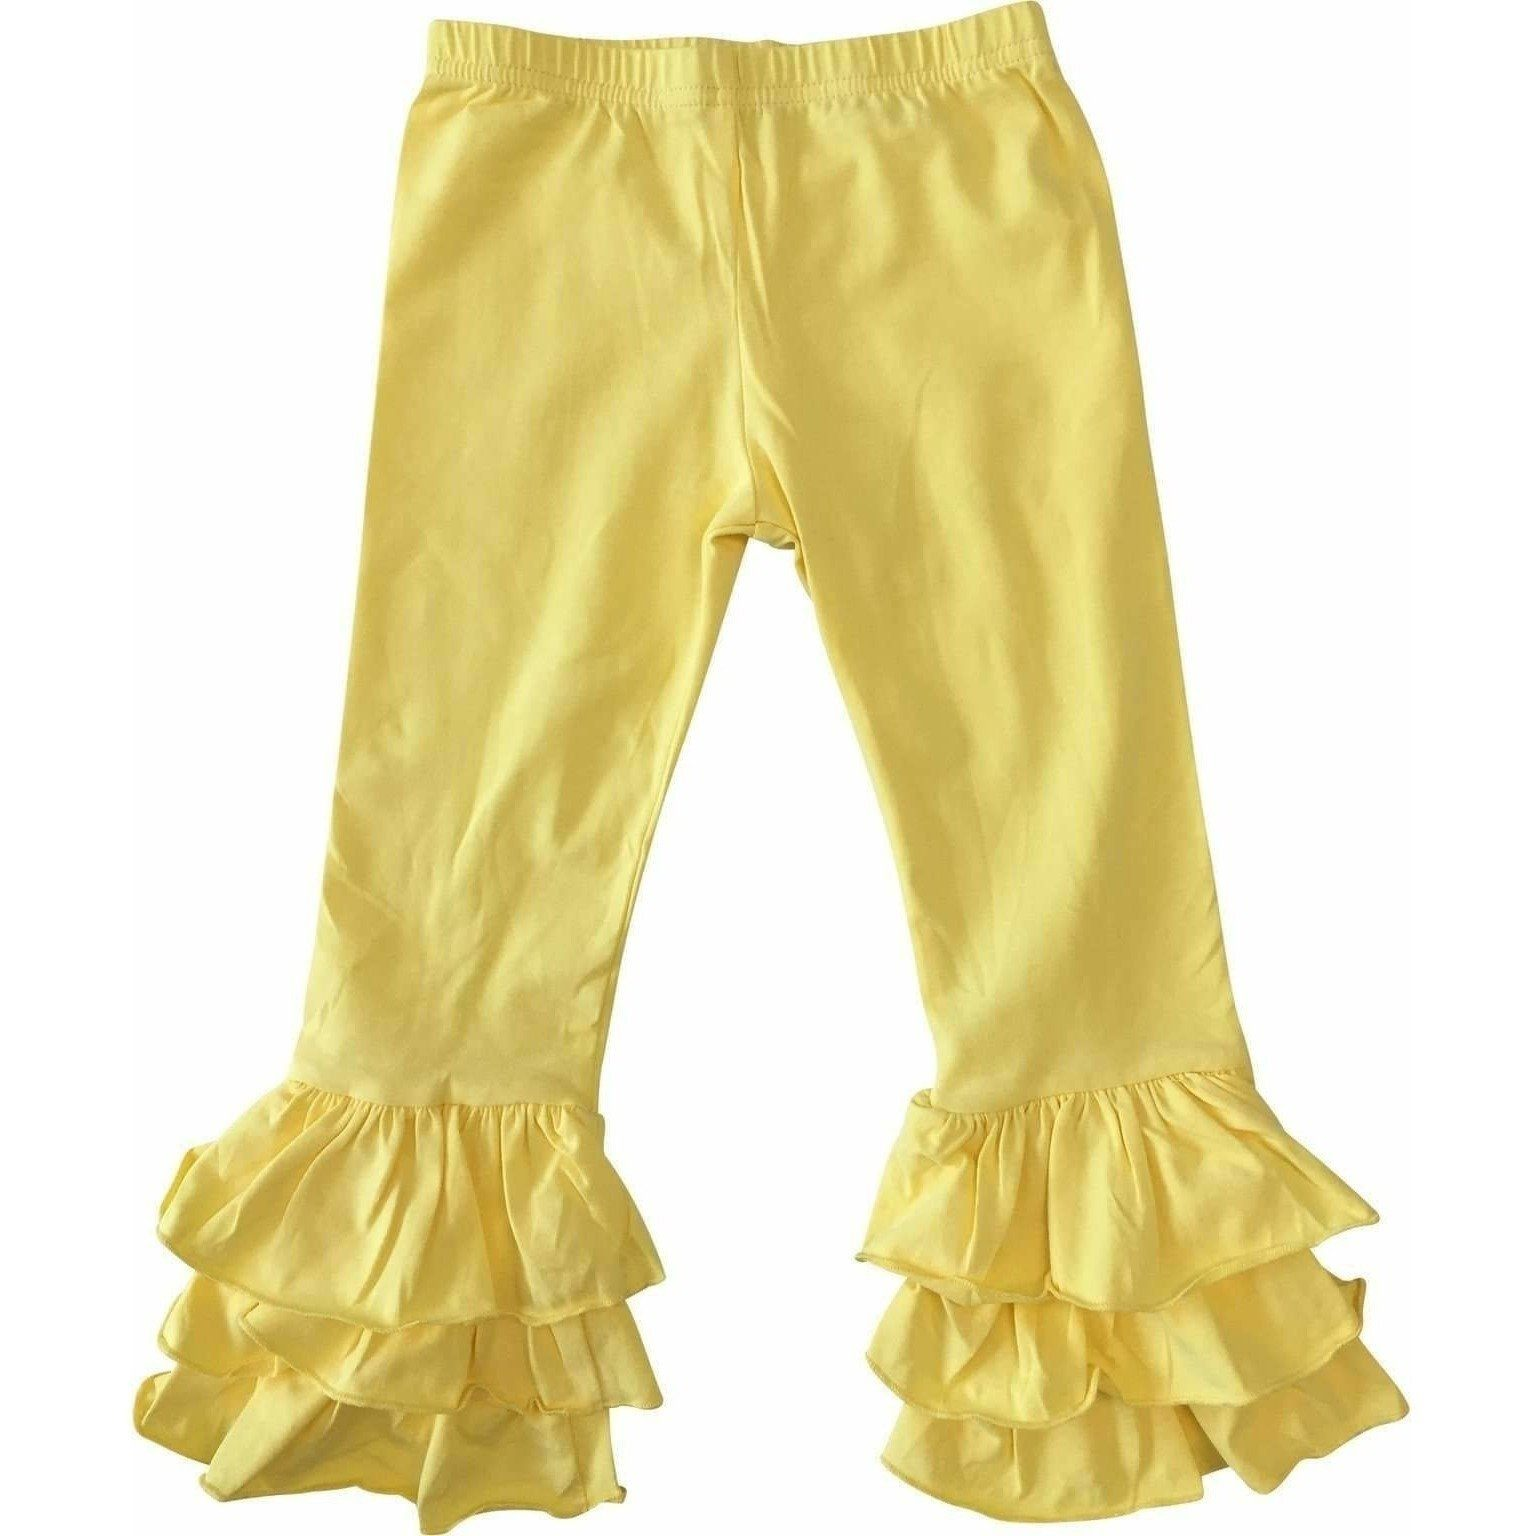 6M & 12M  Baby Triple Ruffle Pants - In Stock!!! - Adorable Essentials